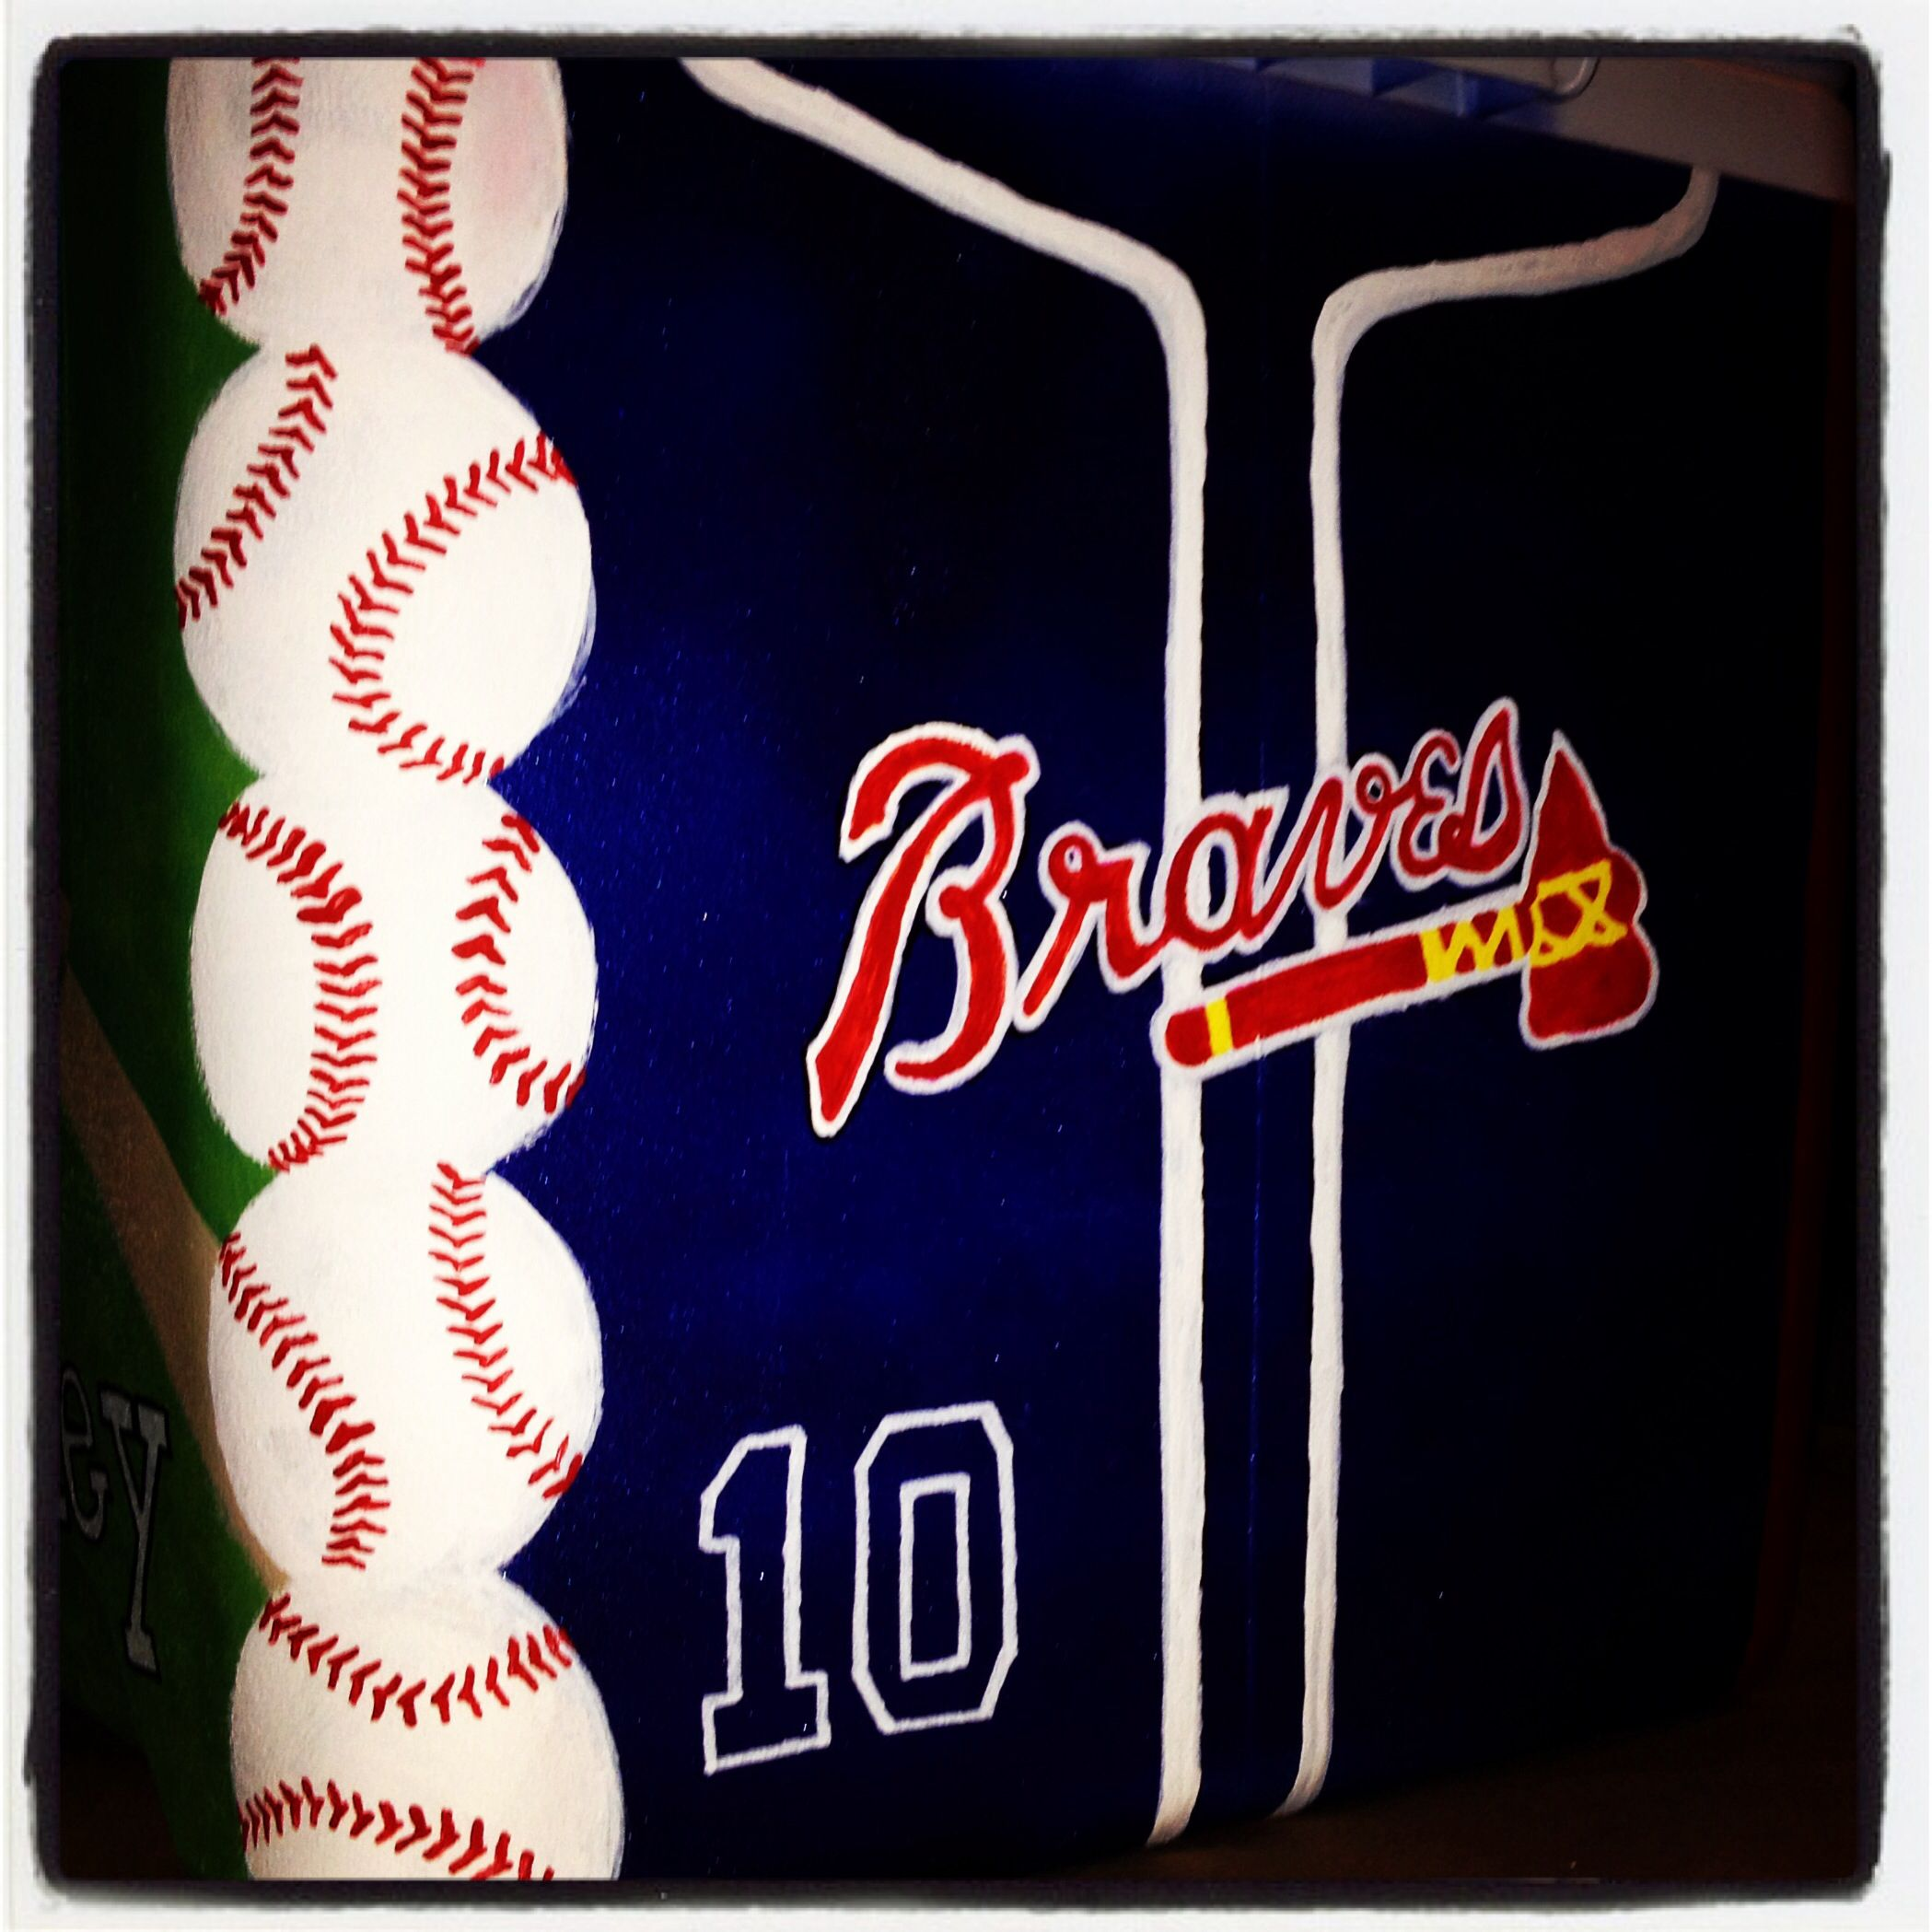 Atlanta Braves Inspired Baseball Painted Cooler Cooler Painting Formal Cooler Ideas Fraternity Coolers